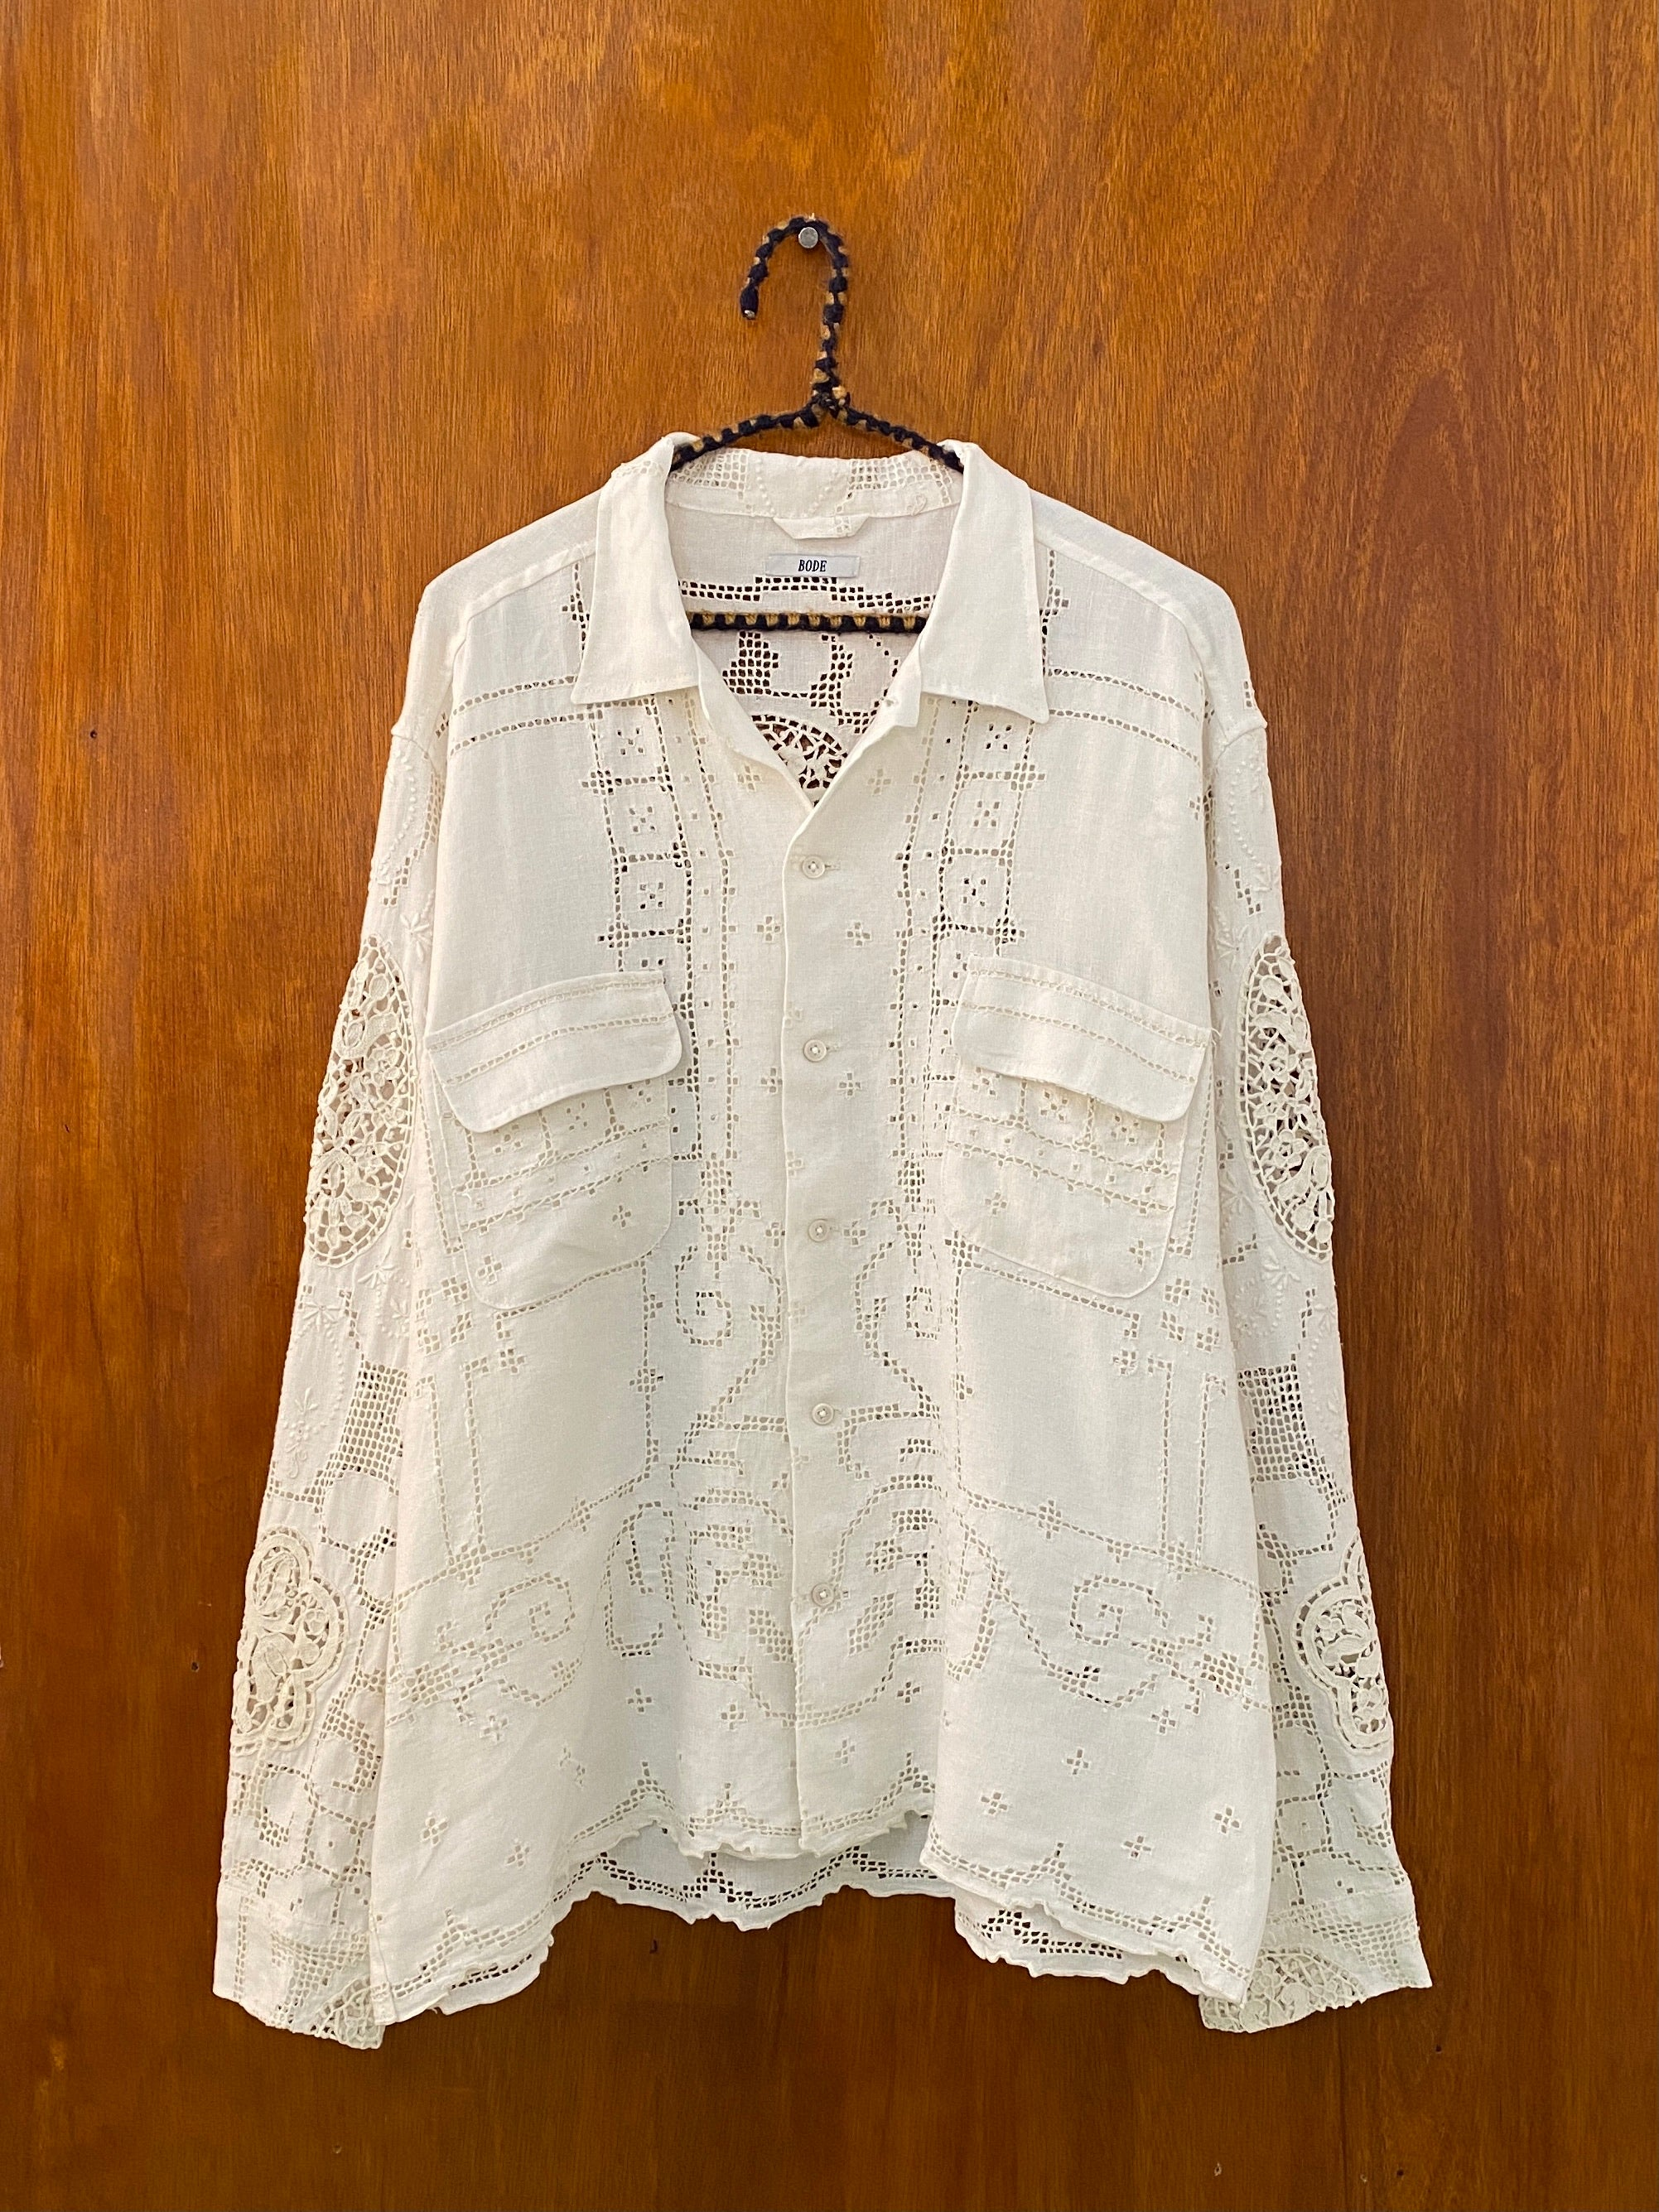 Window Lace Shirt - L/XL